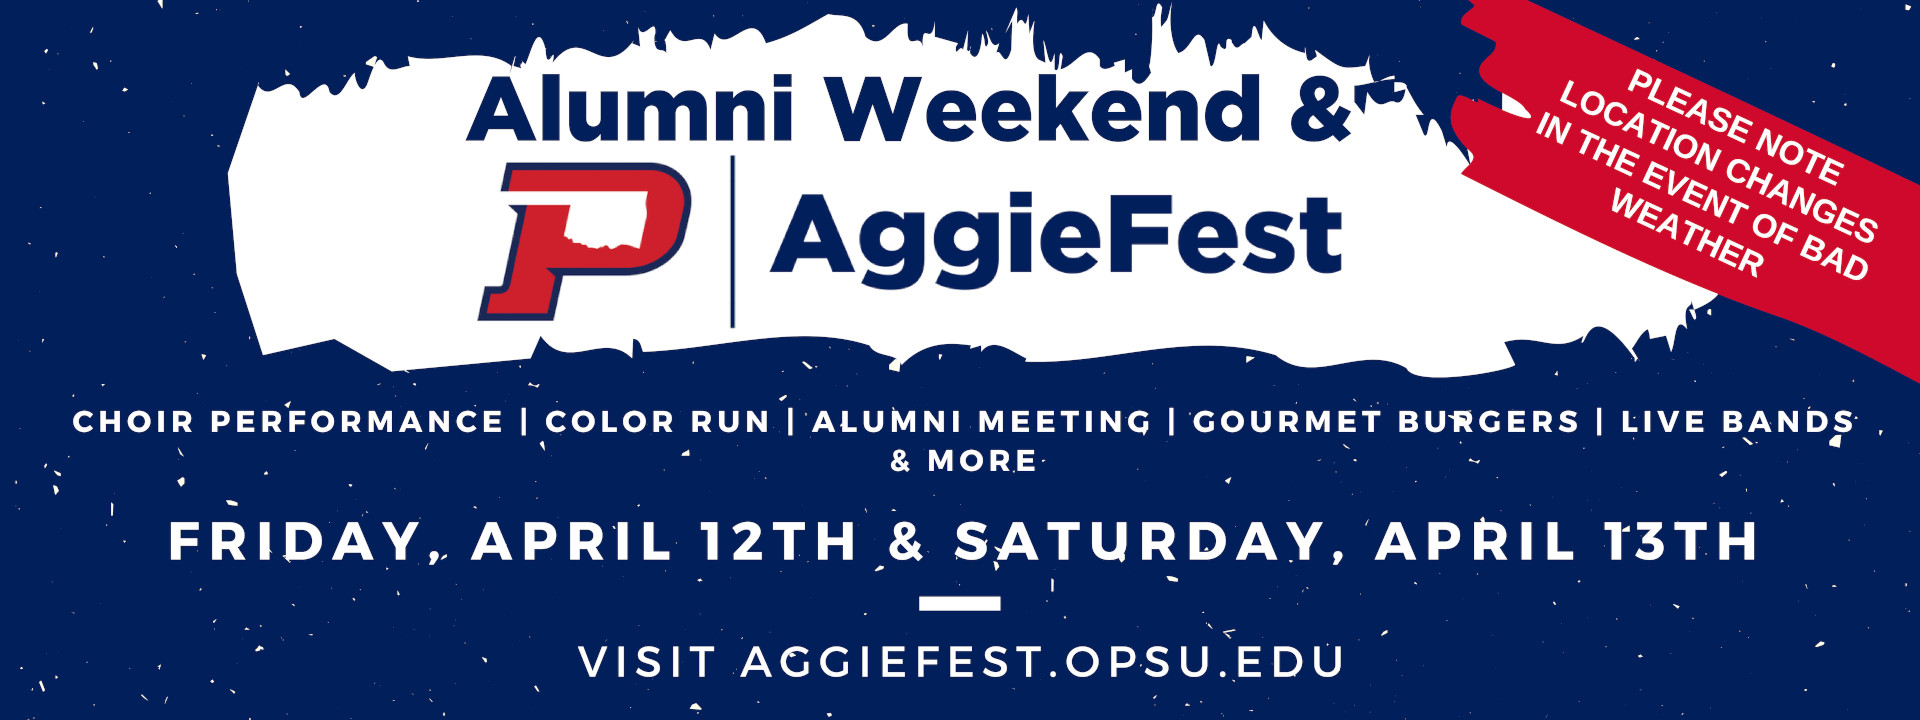 AggieFest - CHOIR PERFORMANCE | COLOR RUN | ALUMNI MEETING | GOURMET BURGERS | LIVE BANDS